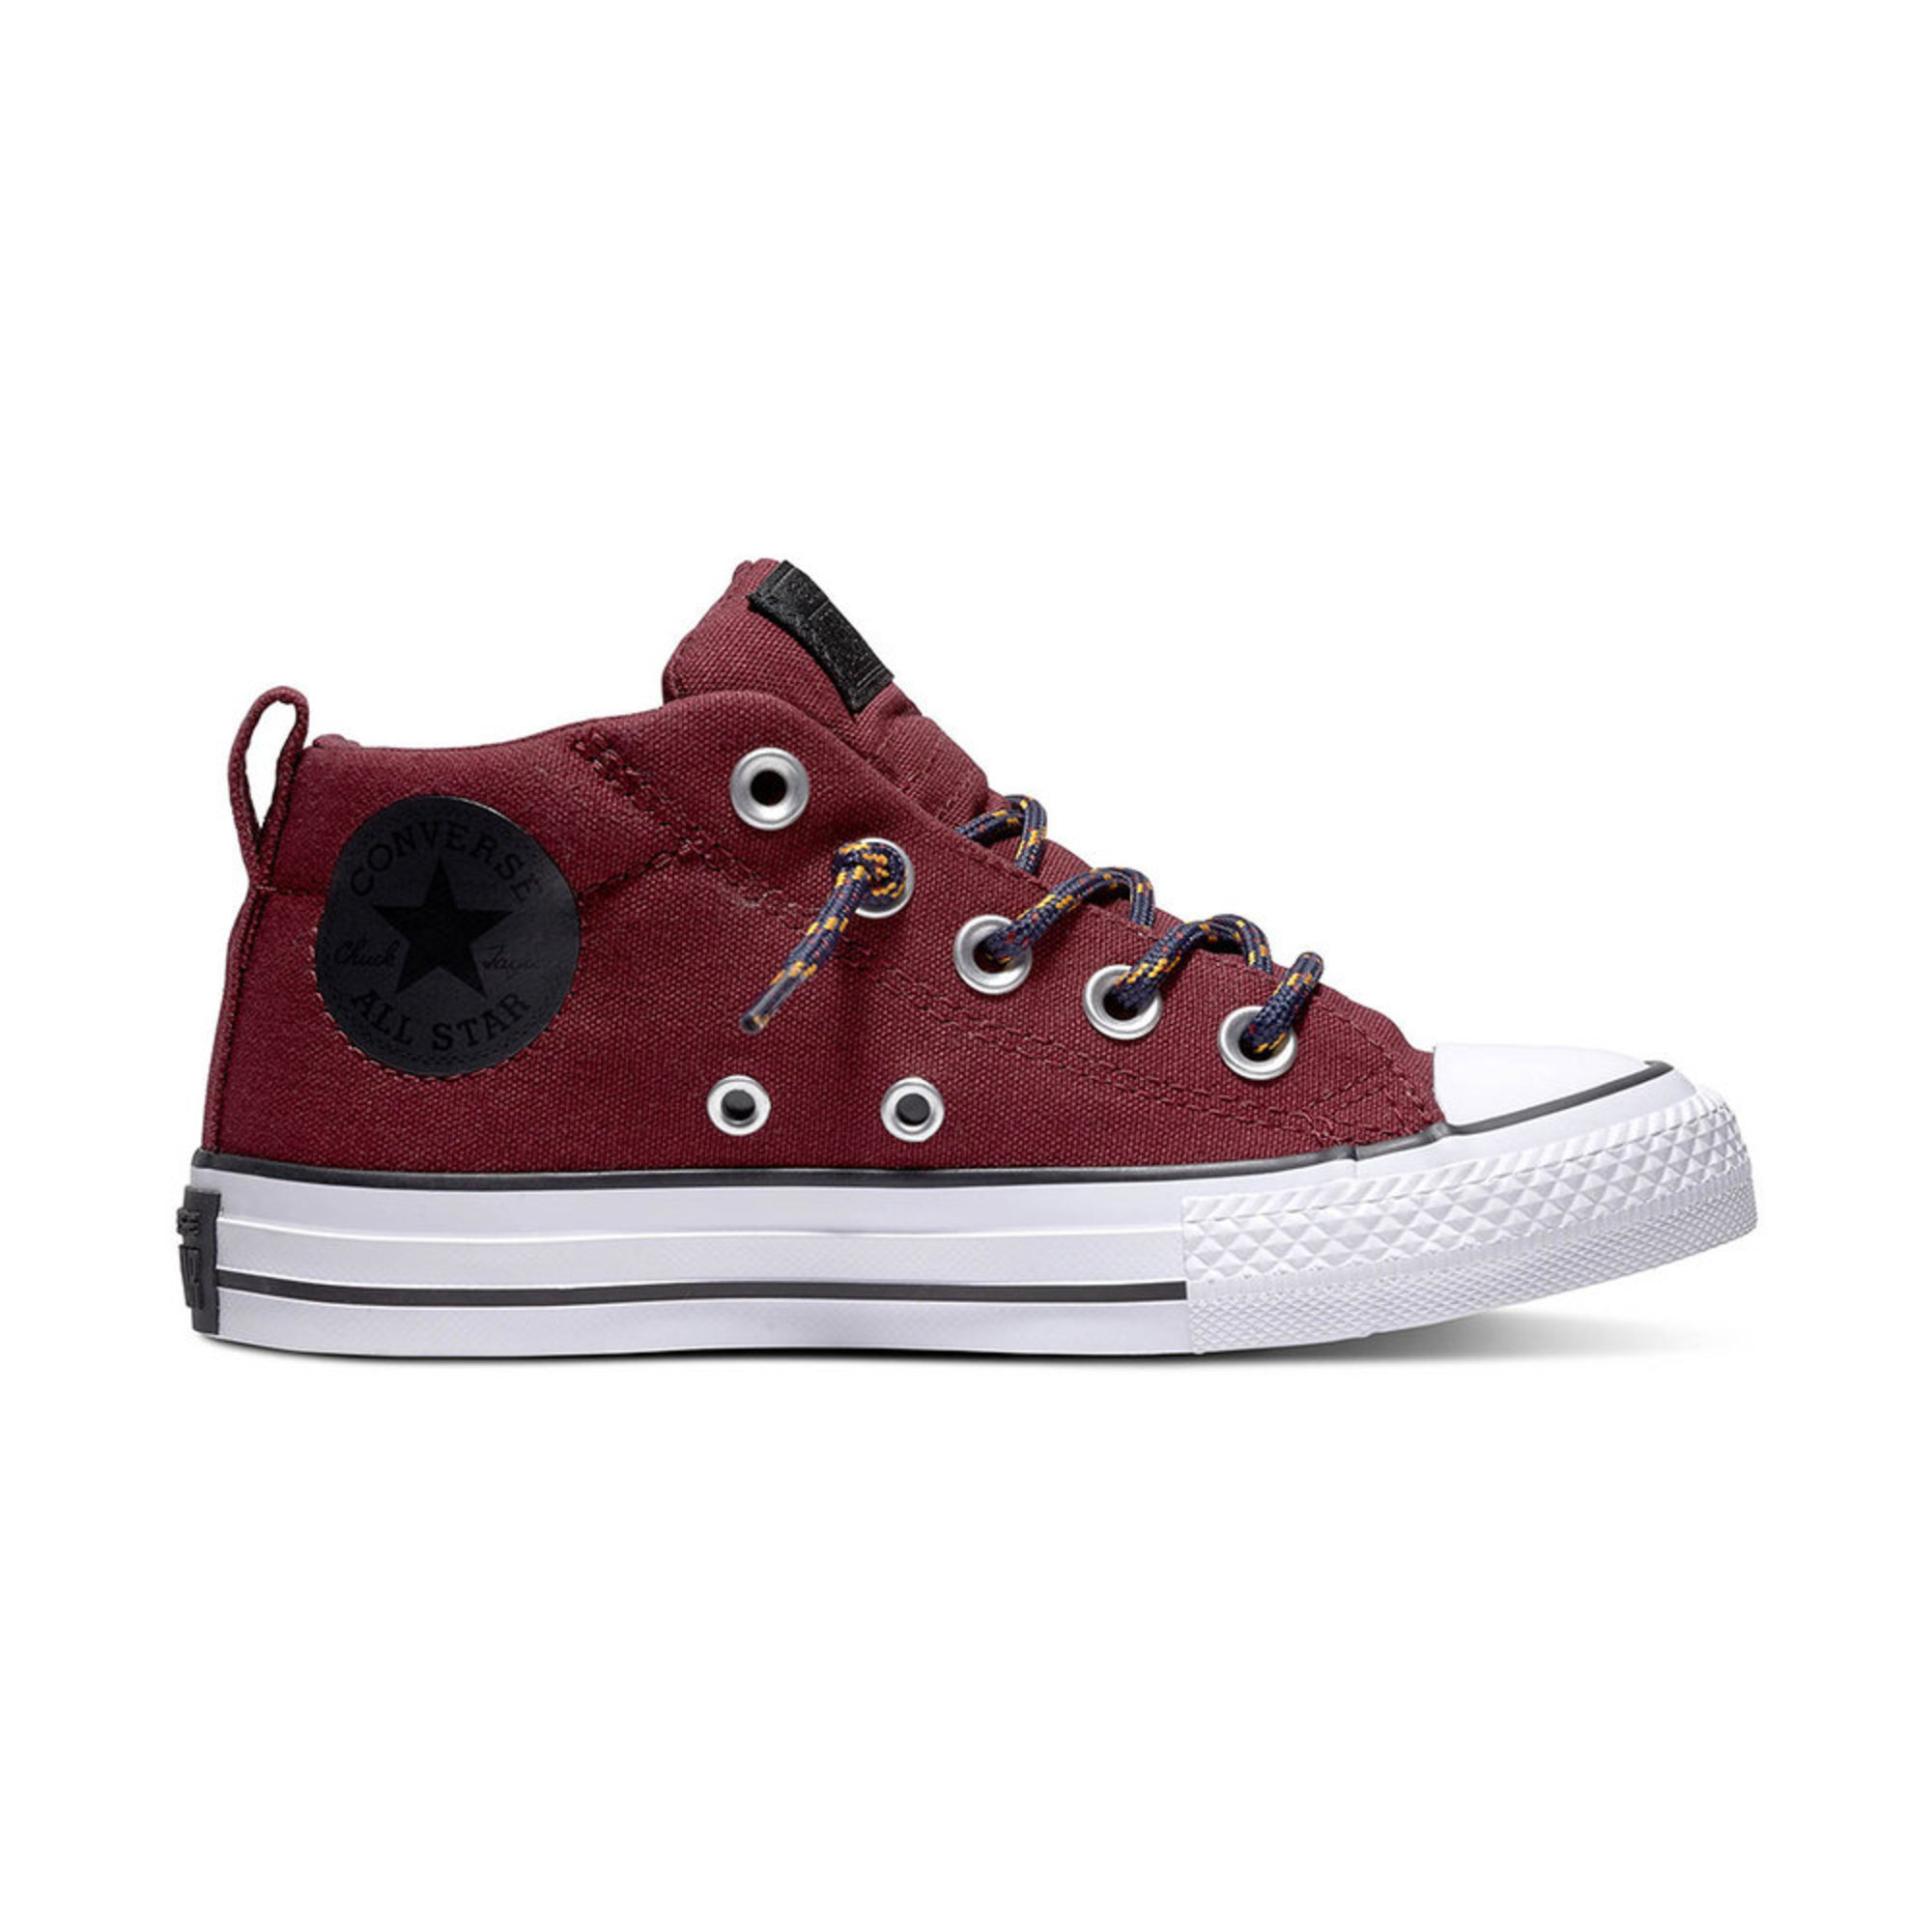 44cbddadf19b Converse Boys Chuck Taylor All Star Street Mid Sneaker (Youth). MSRP.   45.00. Product Rating 0 Based on 0 reviews. 613